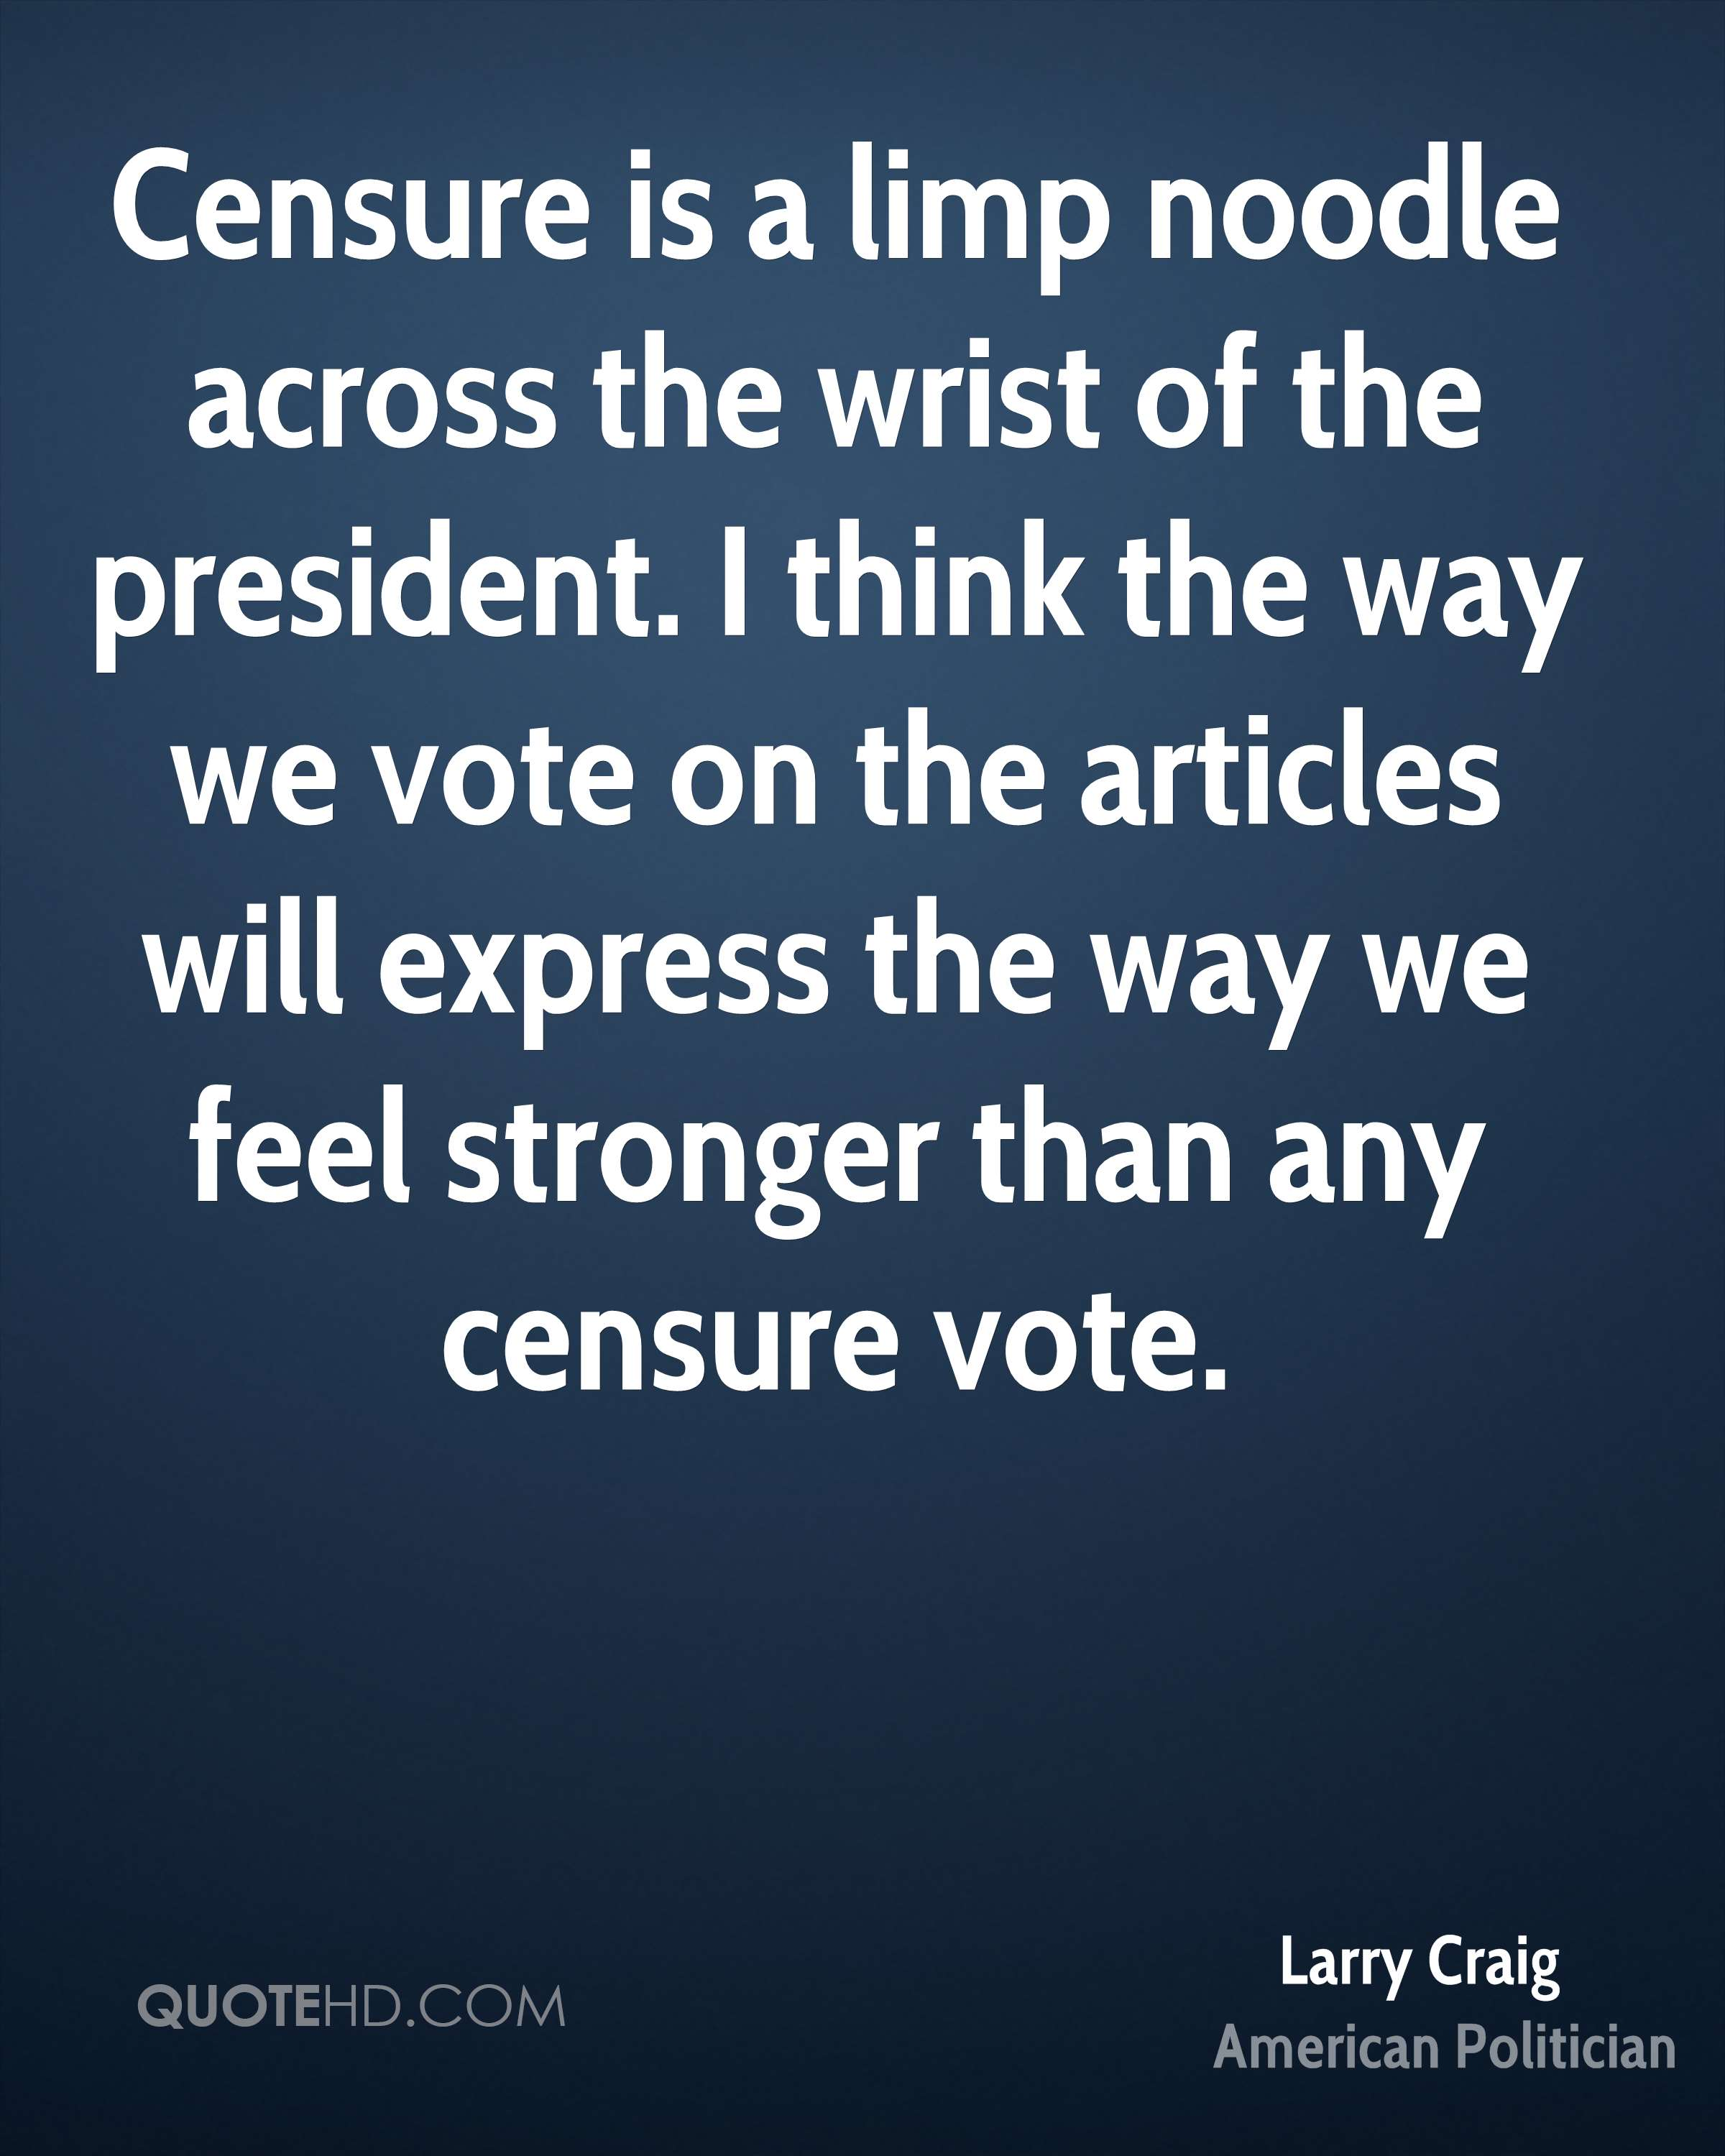 Censure is a limp noodle across the wrist of the president. I think the way we vote on the articles will express the way we feel stronger than any censure vote.